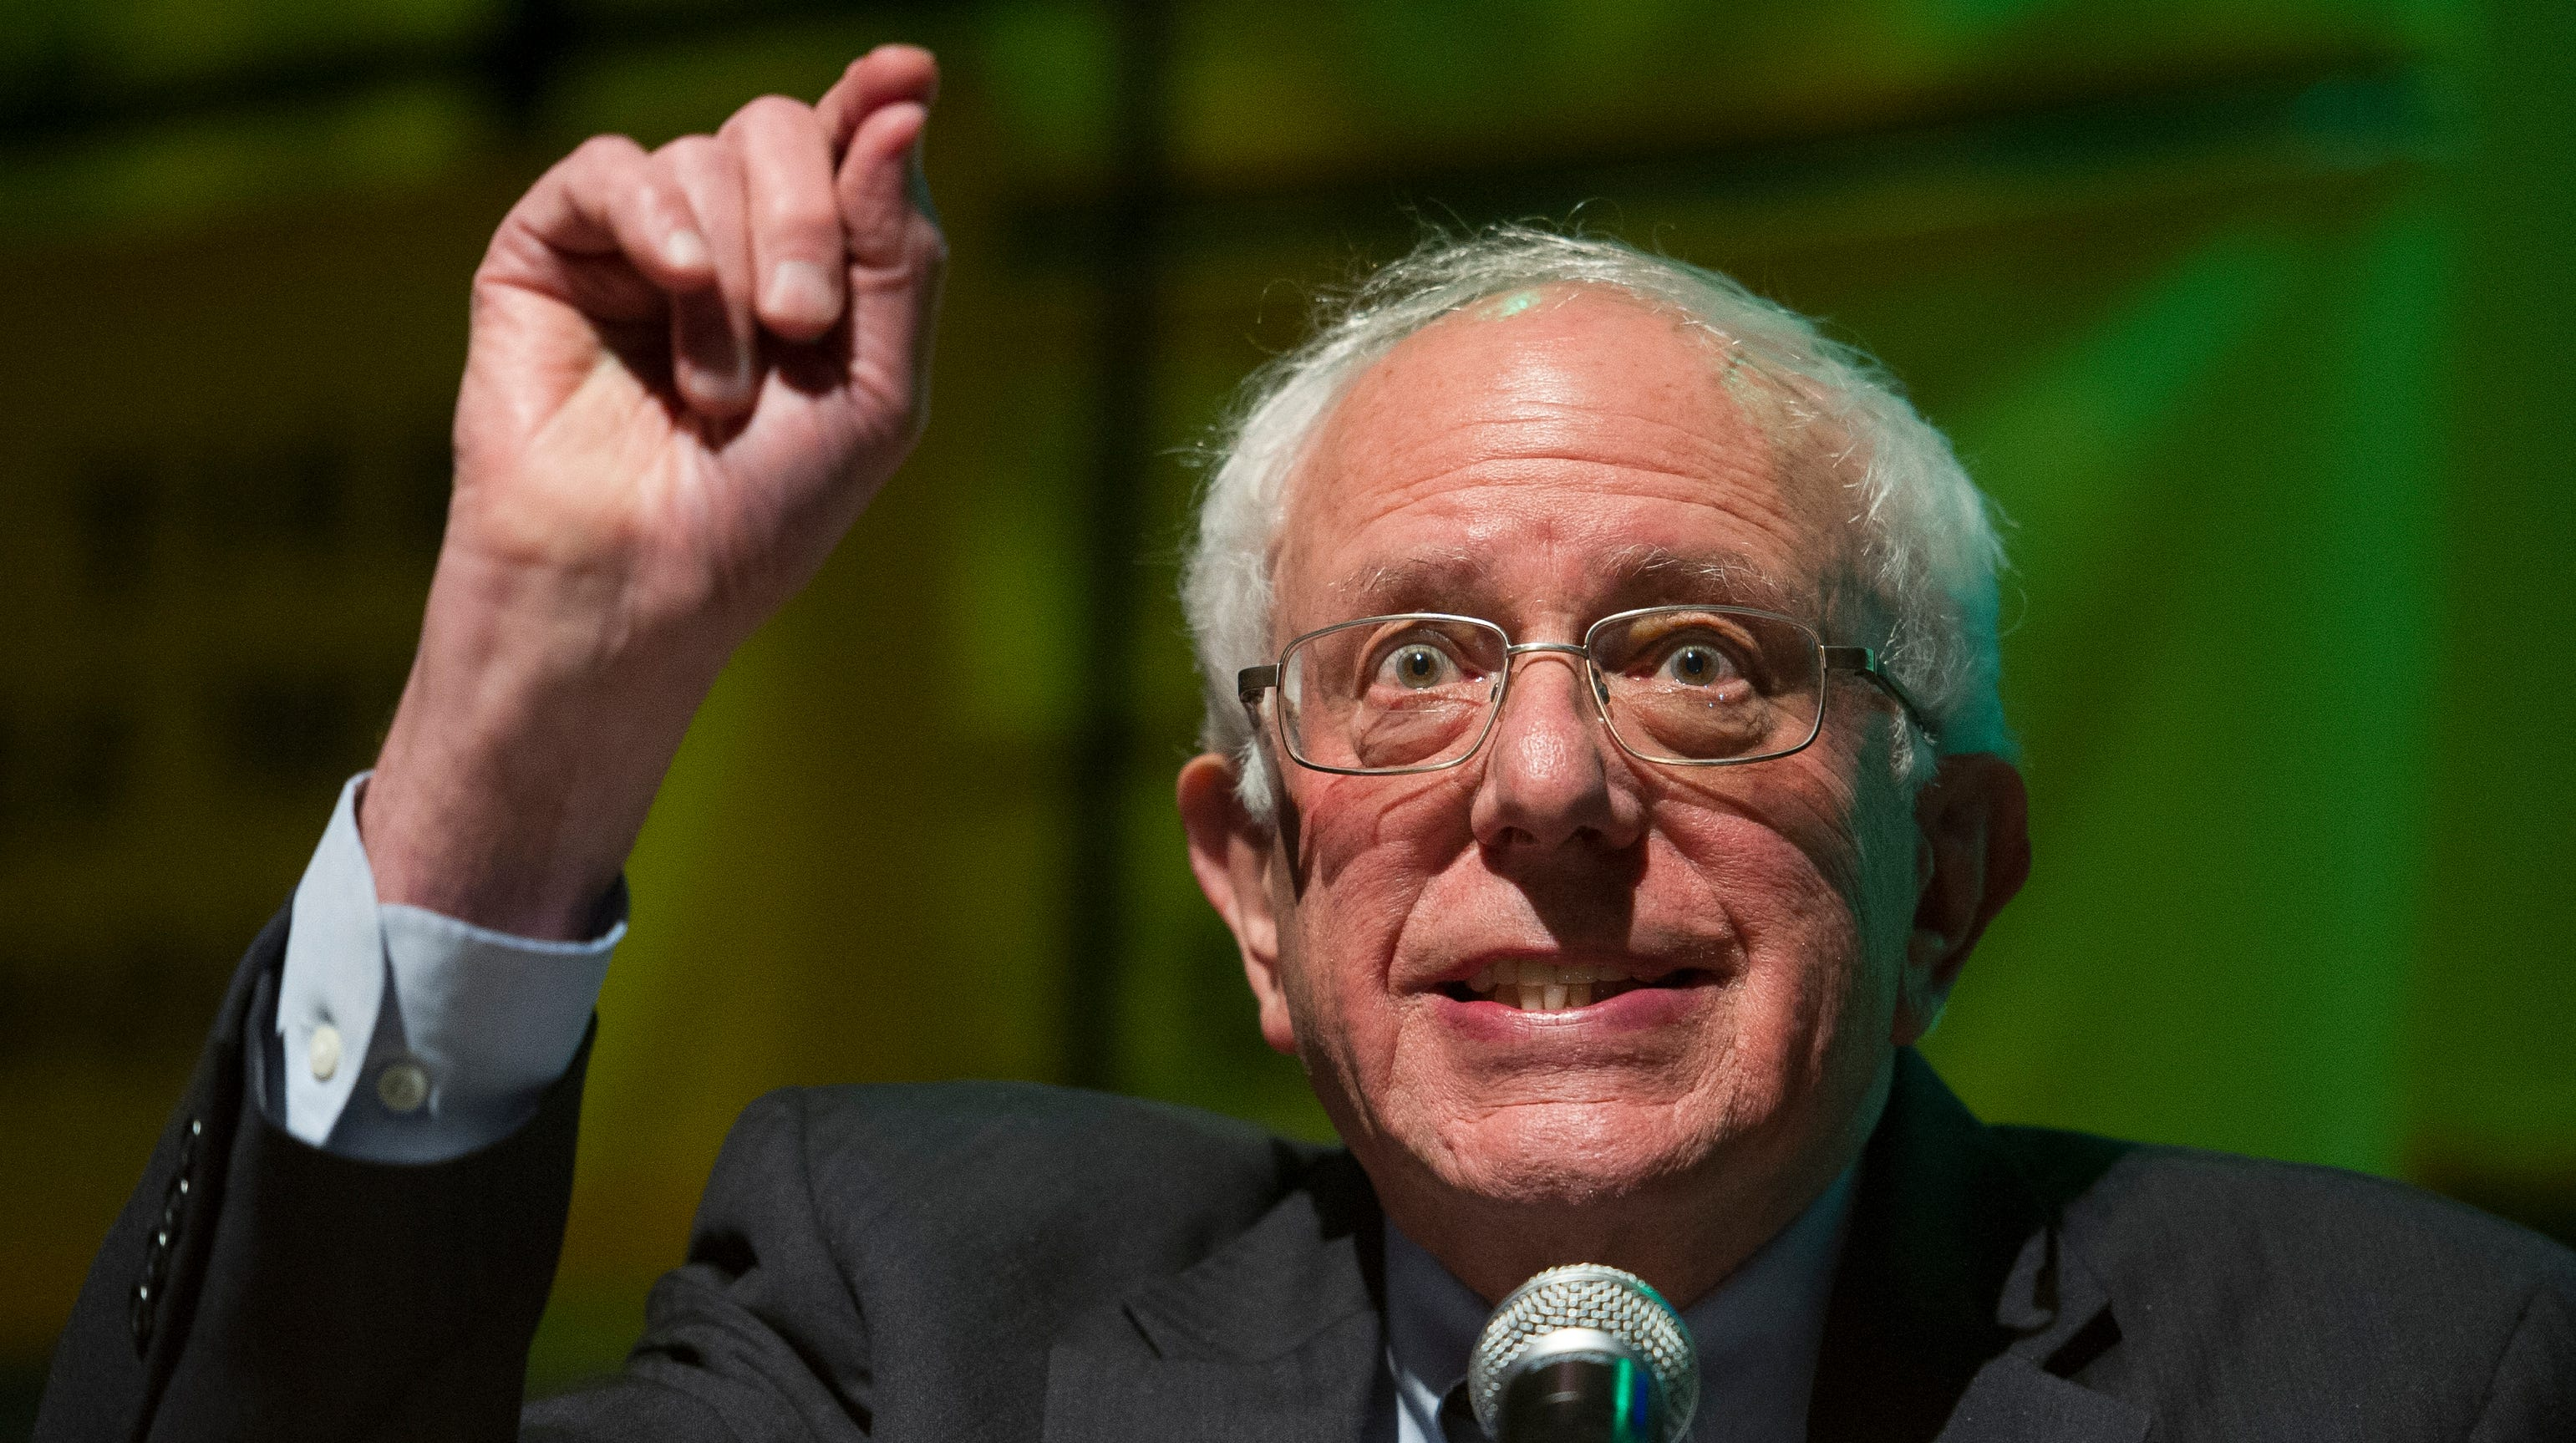 Sen. Bernie Sanders, I-Vt. addresses The Road to the Green New Deal Tour final event at Howard University in Washington, Monday, May 13, 2019.